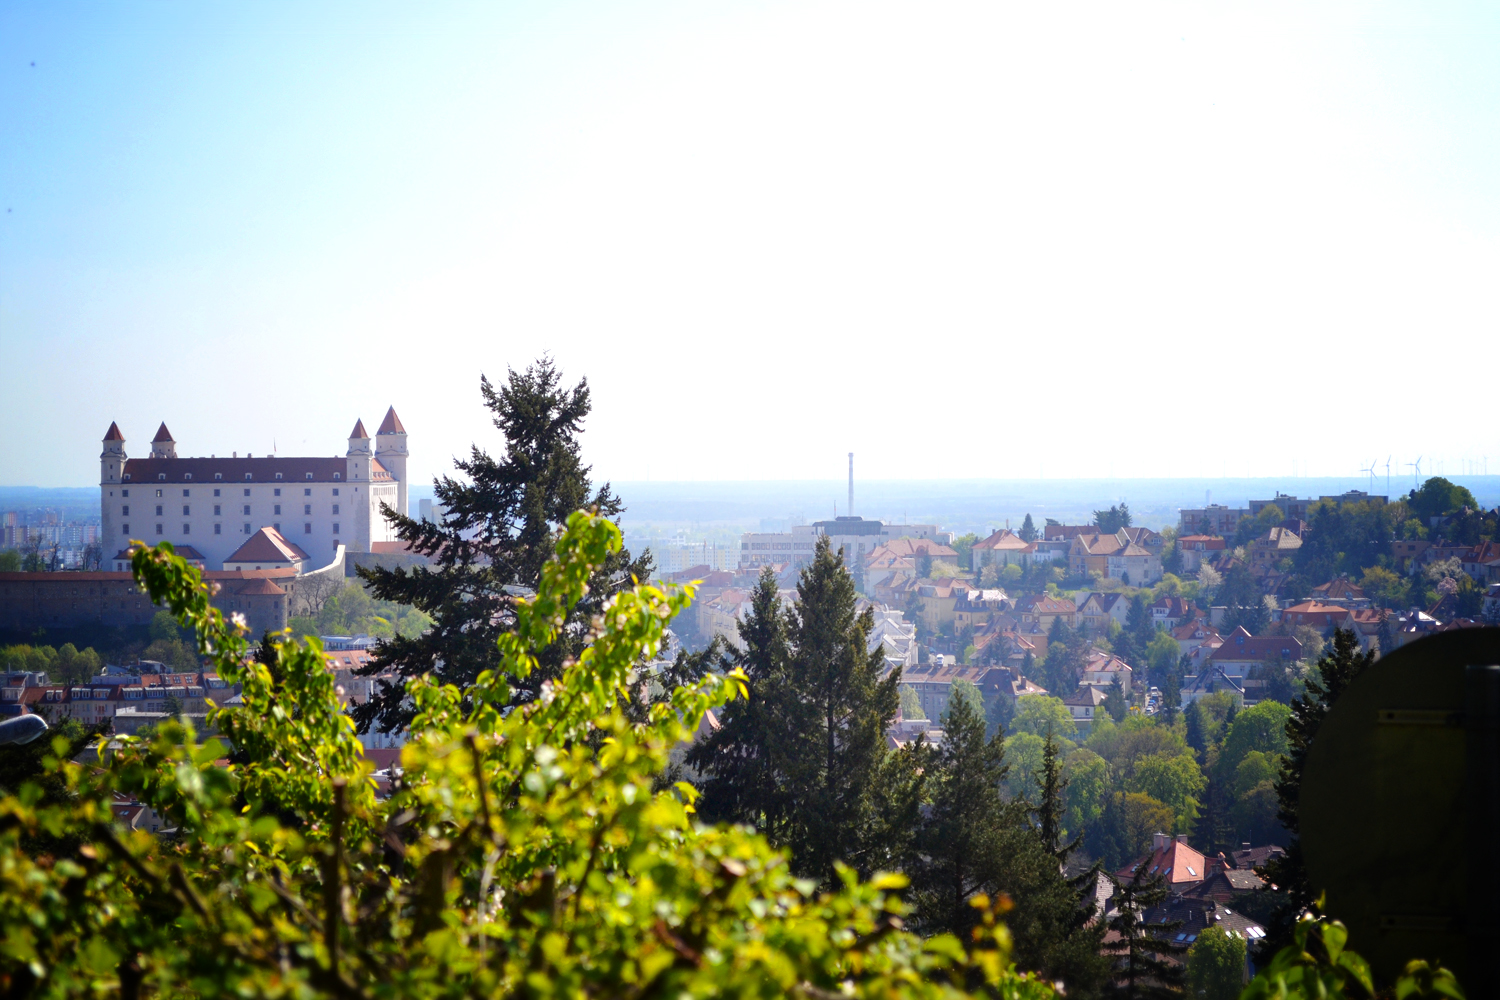 View of Hrad Castle